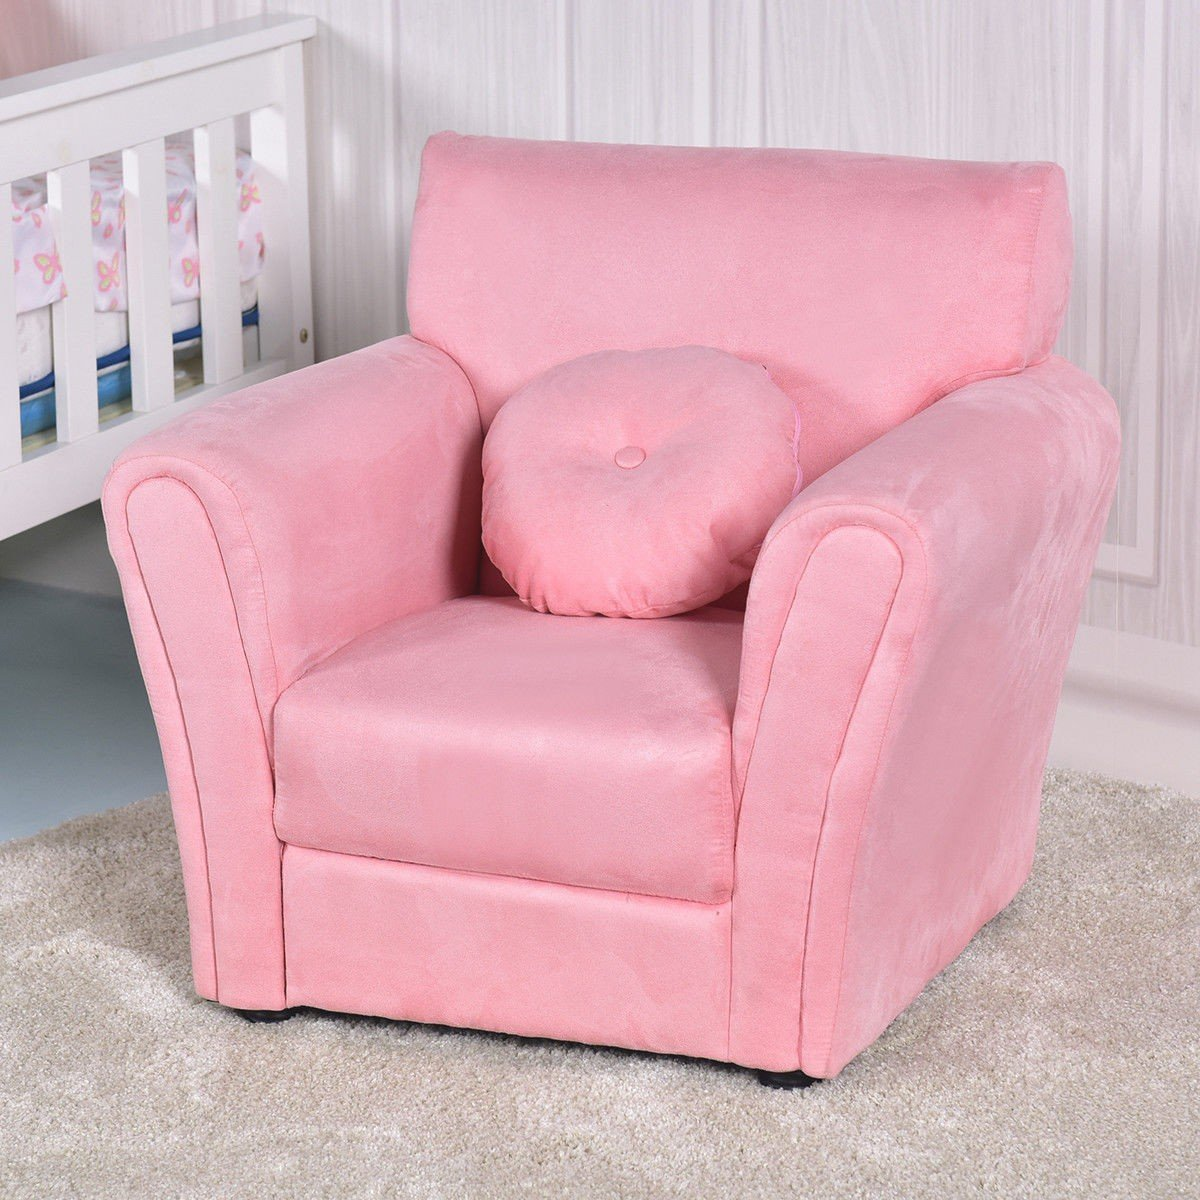 children s living room chairs wedding chair covers rental near me armrest kids sofa with pillow  by